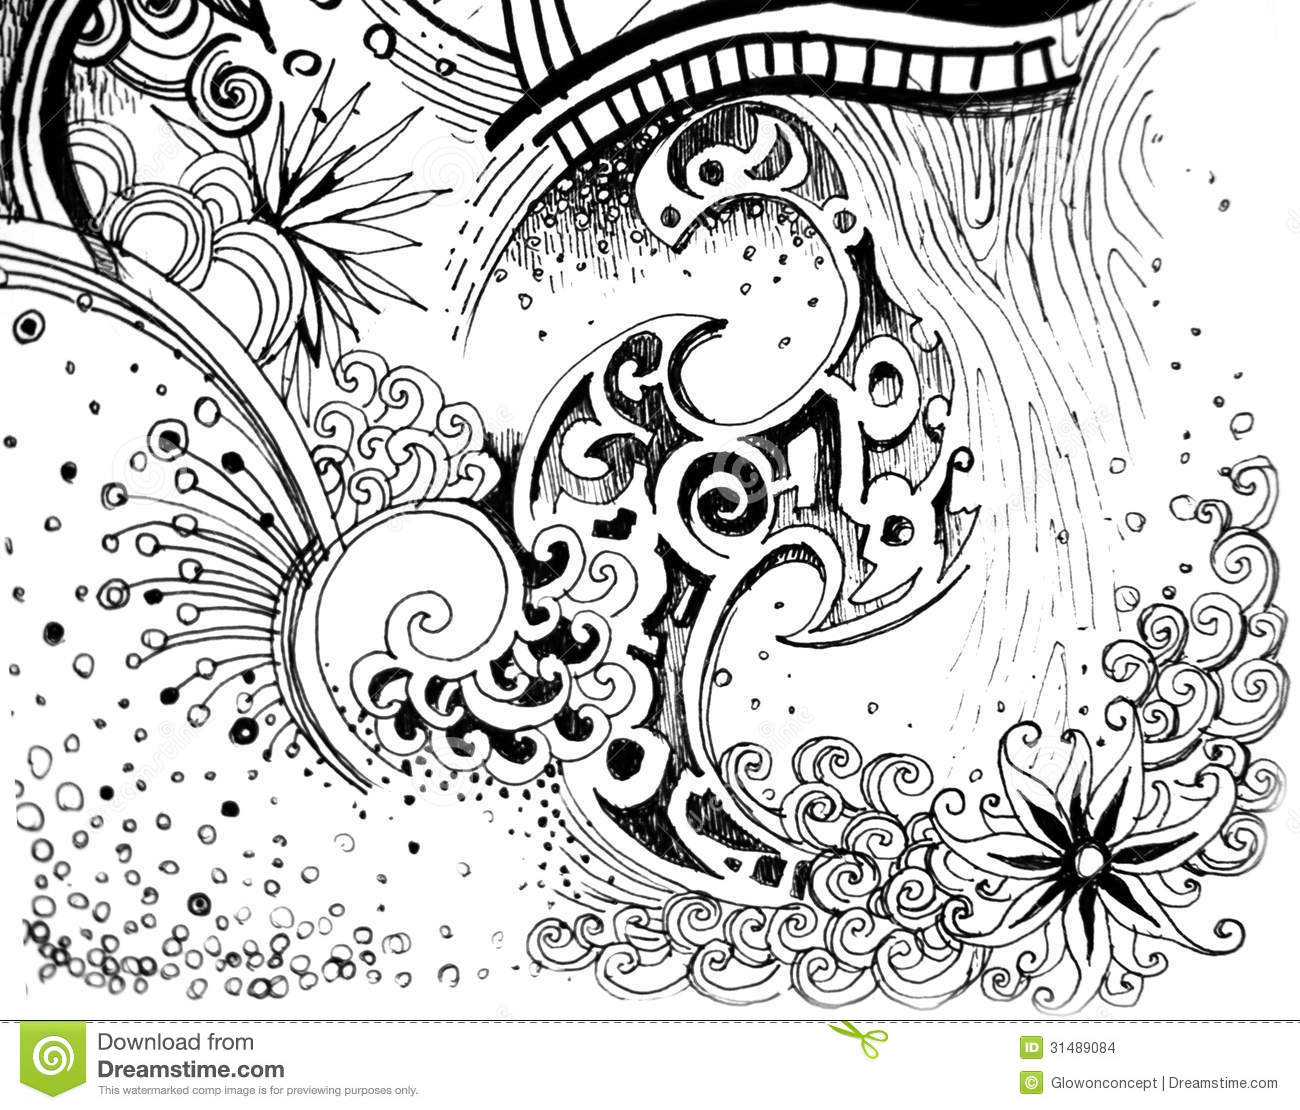 Abstract Line Drawing Flowers : Abstract drawings of flowers black and white images